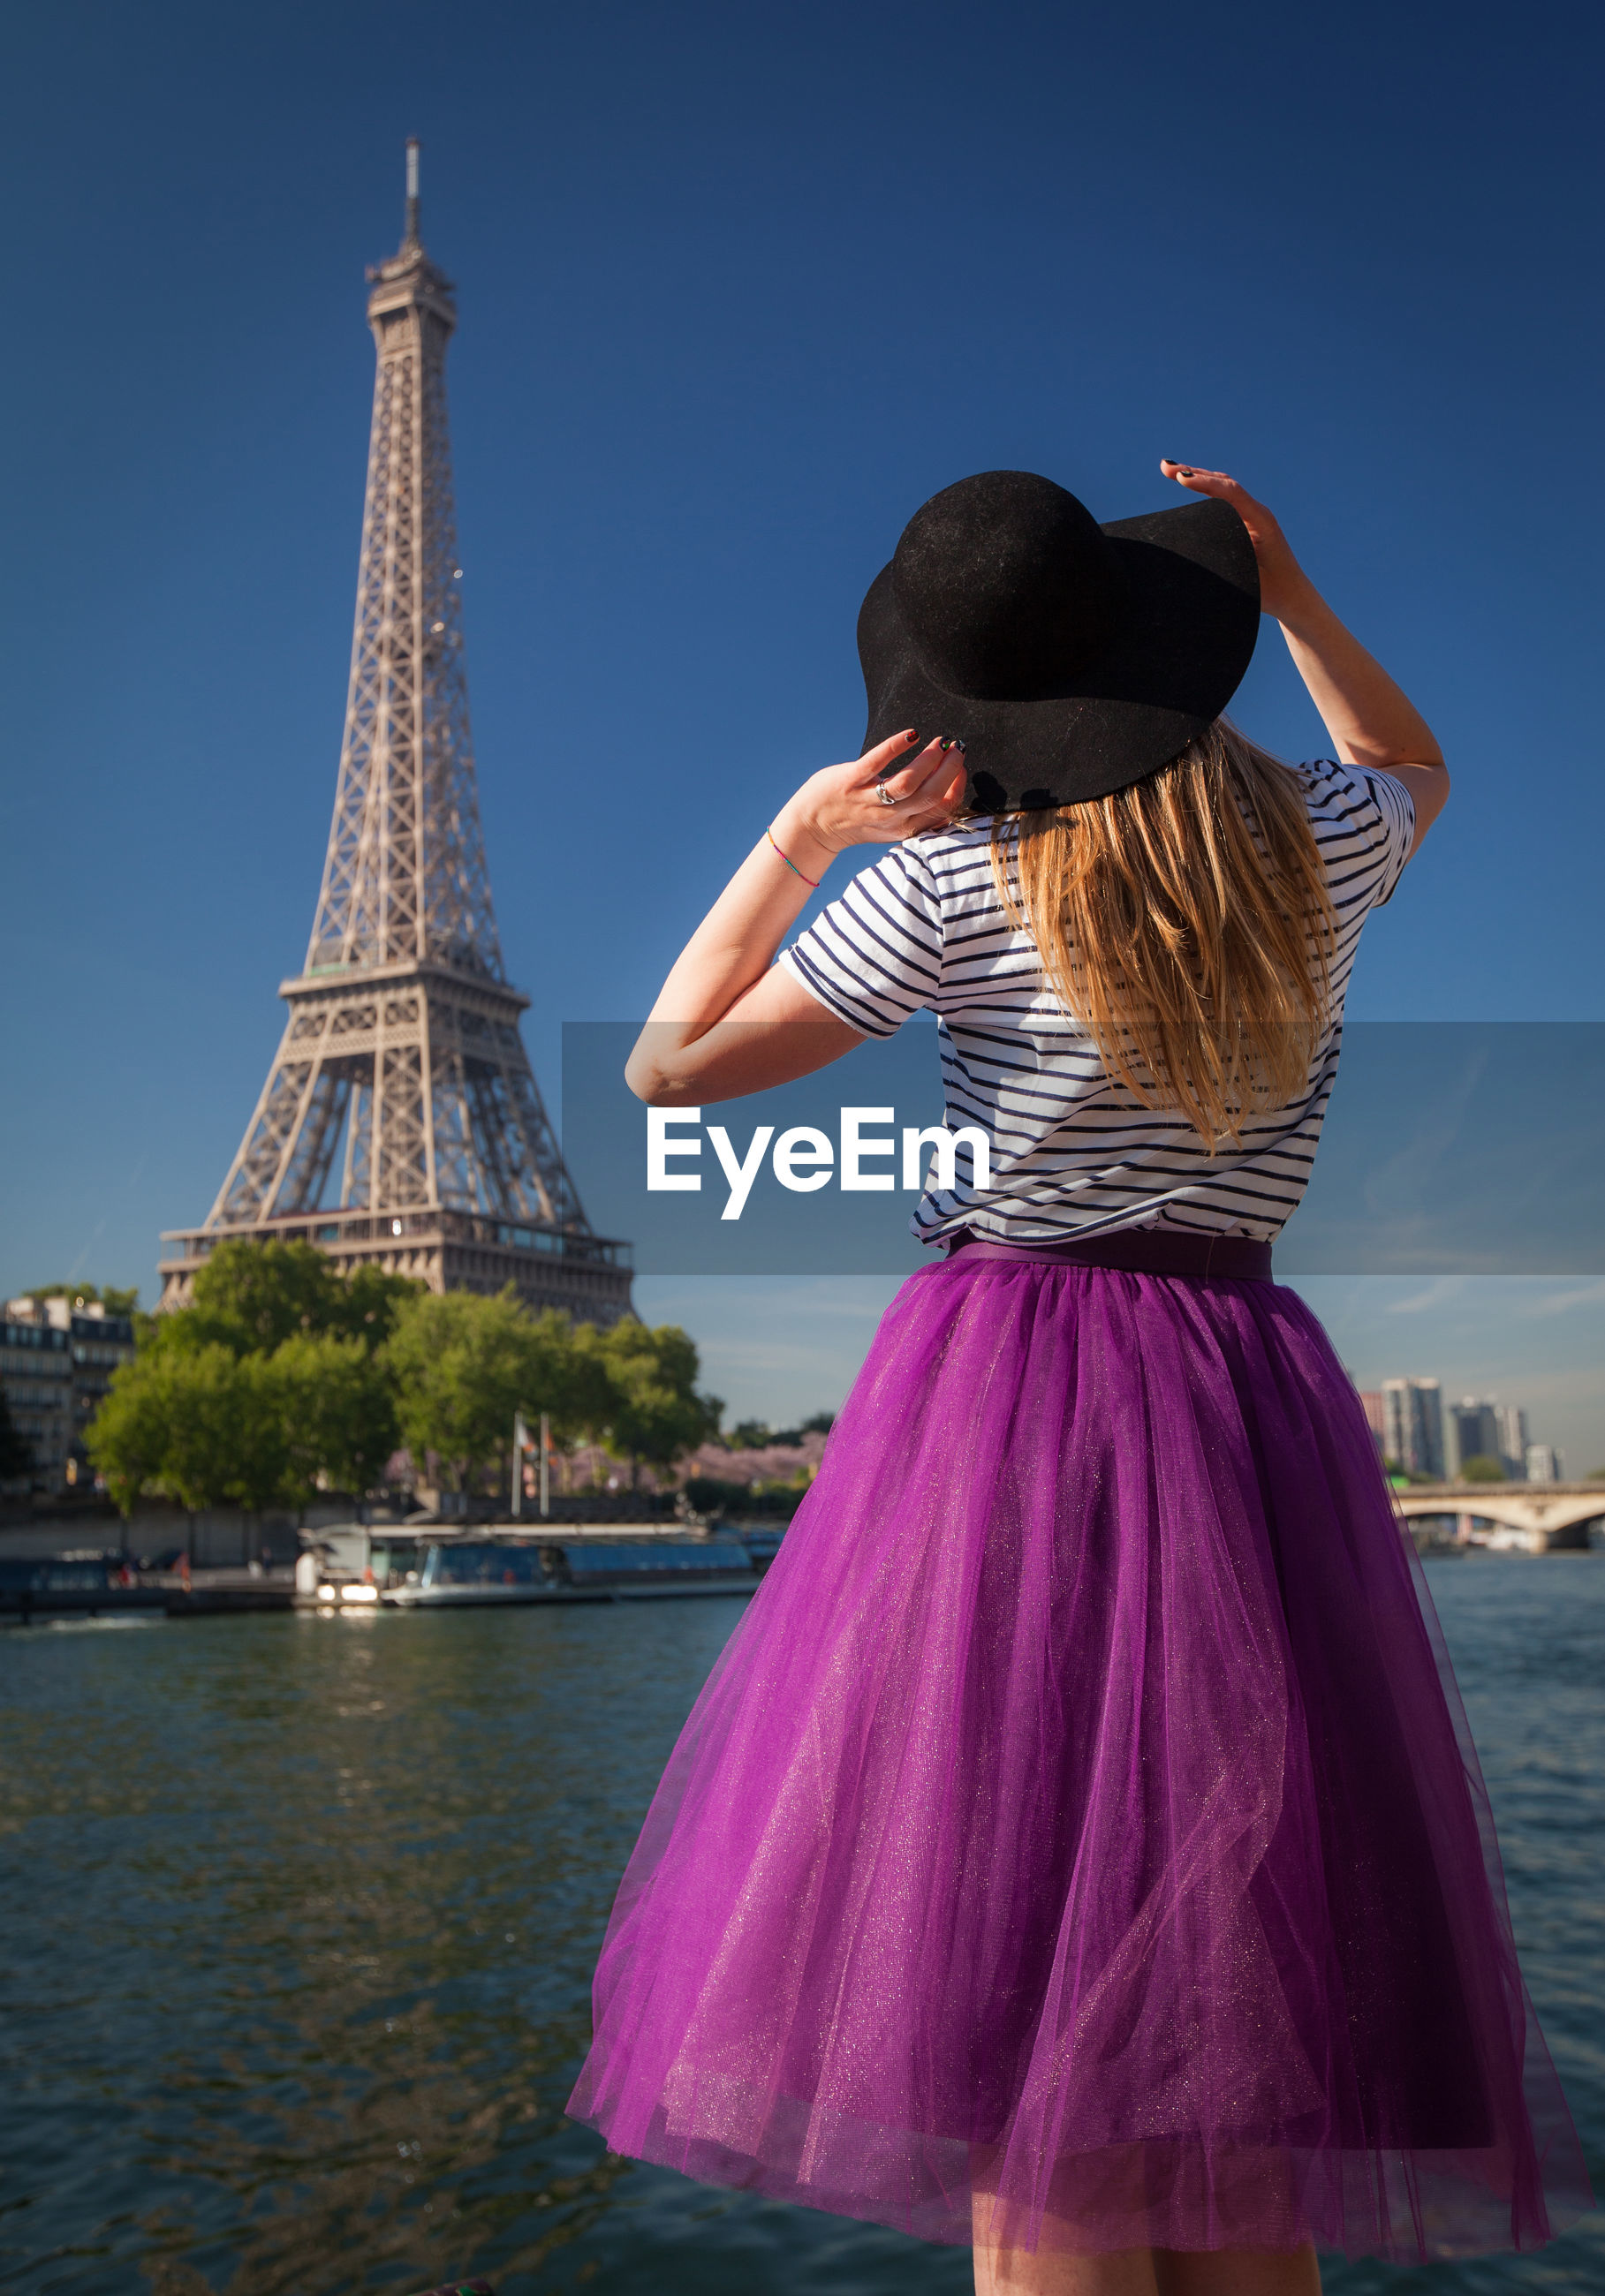 Rear view of woman standing against eiffel tower by river against blue sky